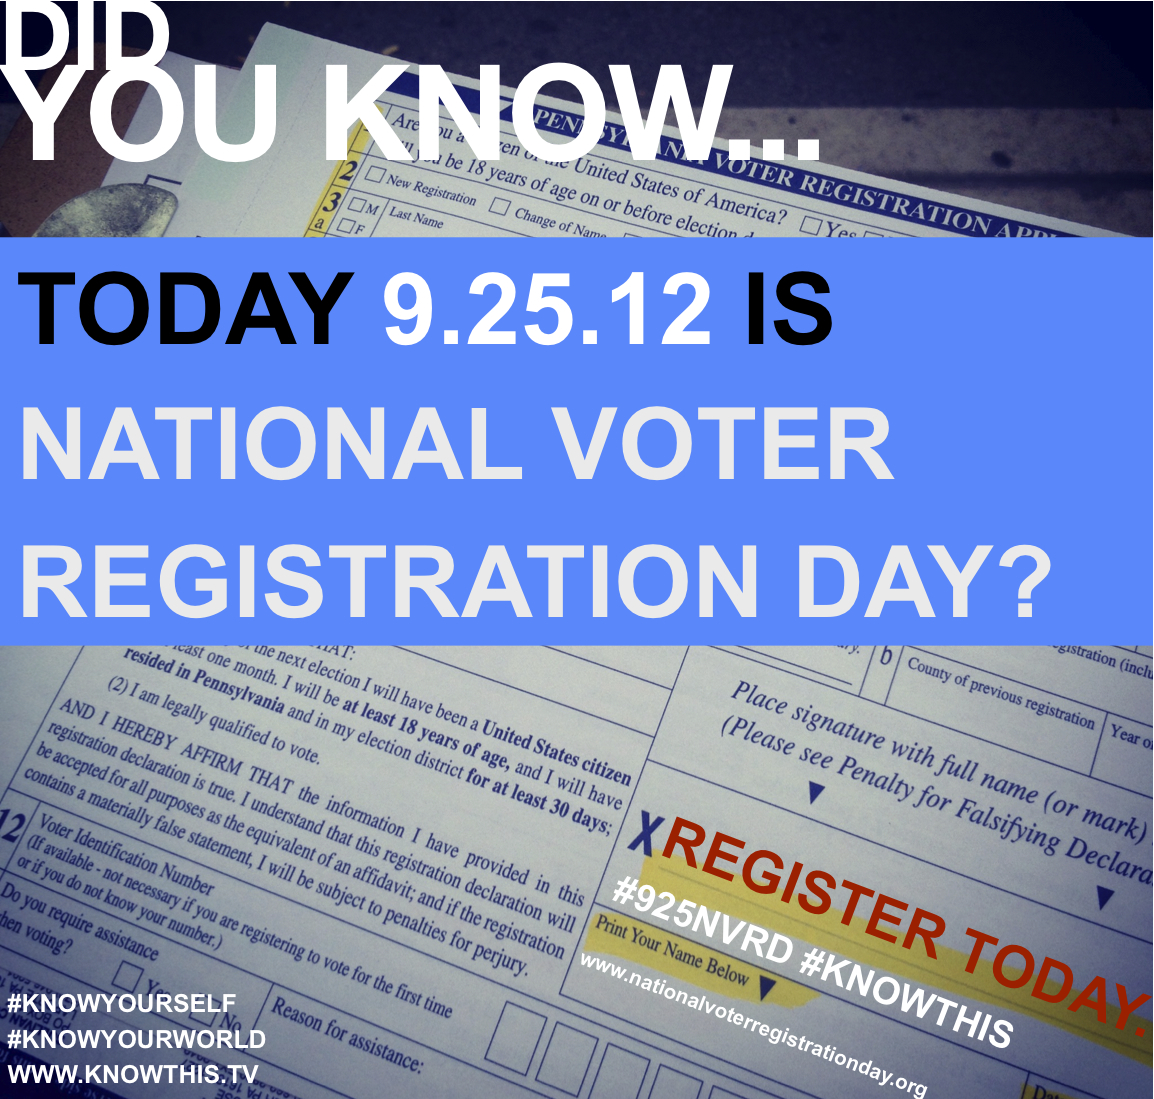 National Voter Registration Day is TODAY! Holler. Register. And then holler about how you registered.  www.nationalvoterregistrationday.org